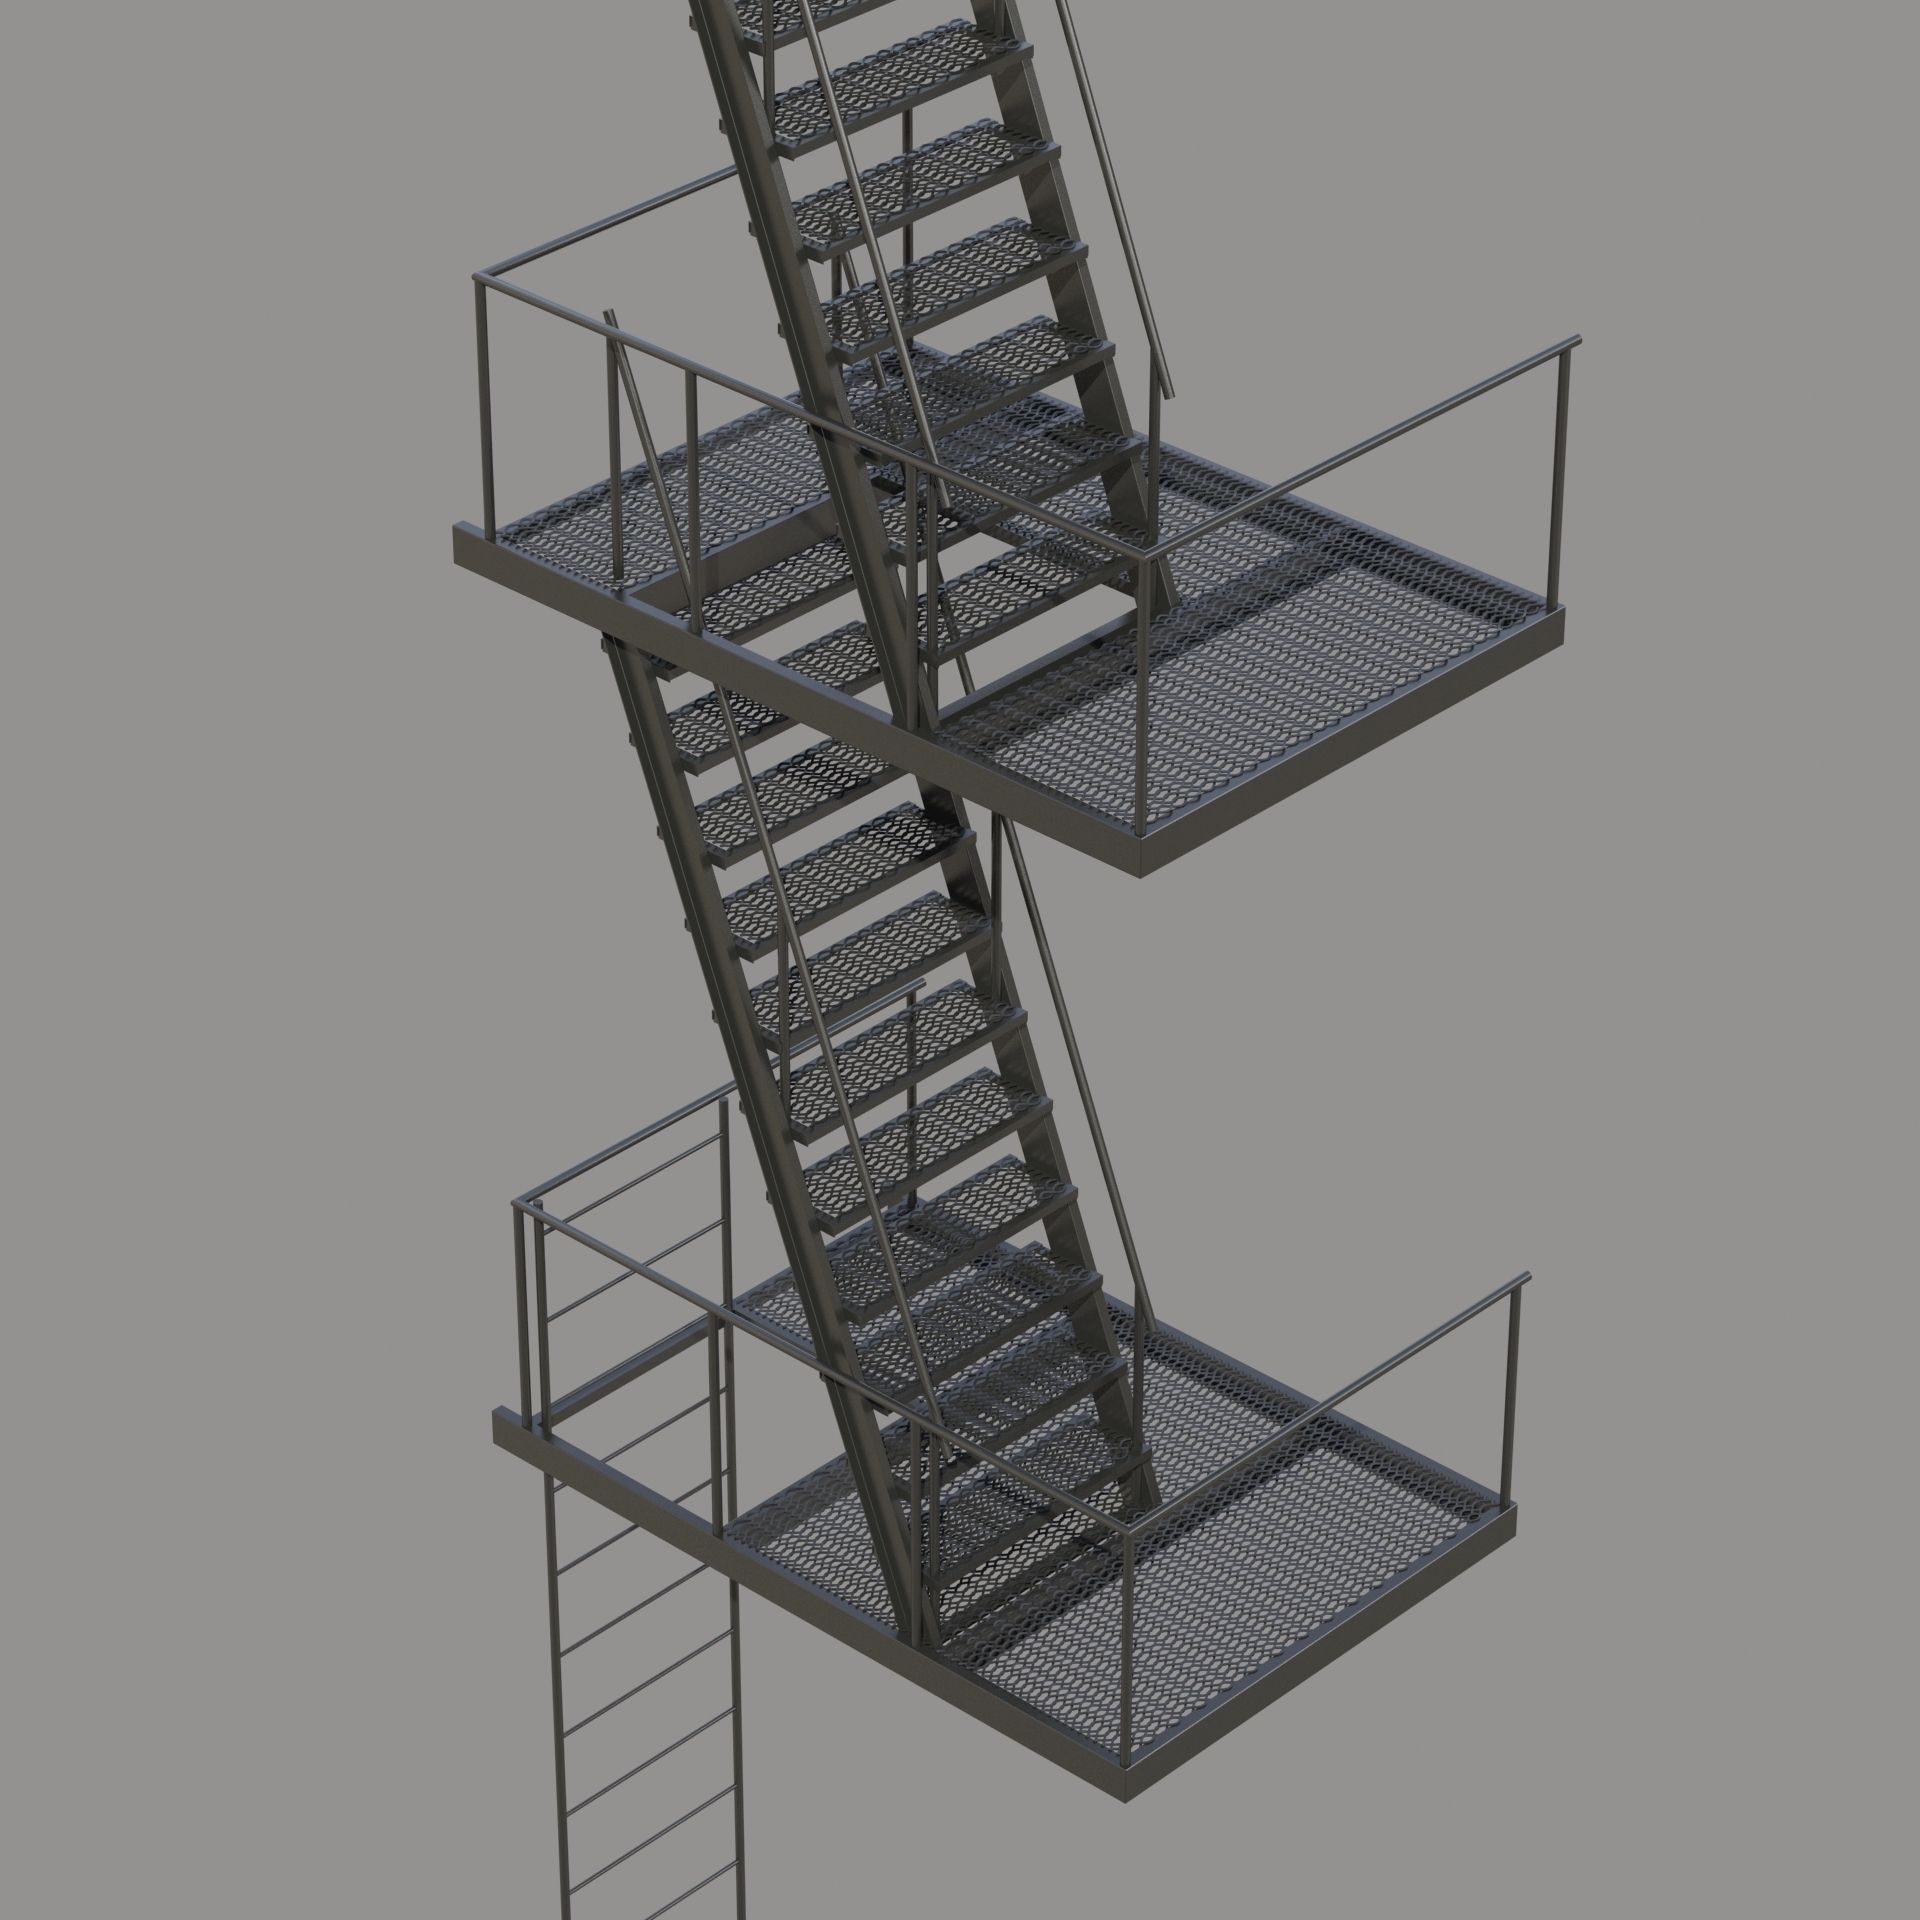 Fire Escape Stair 3d Model Max Fbx Cgtrader Com